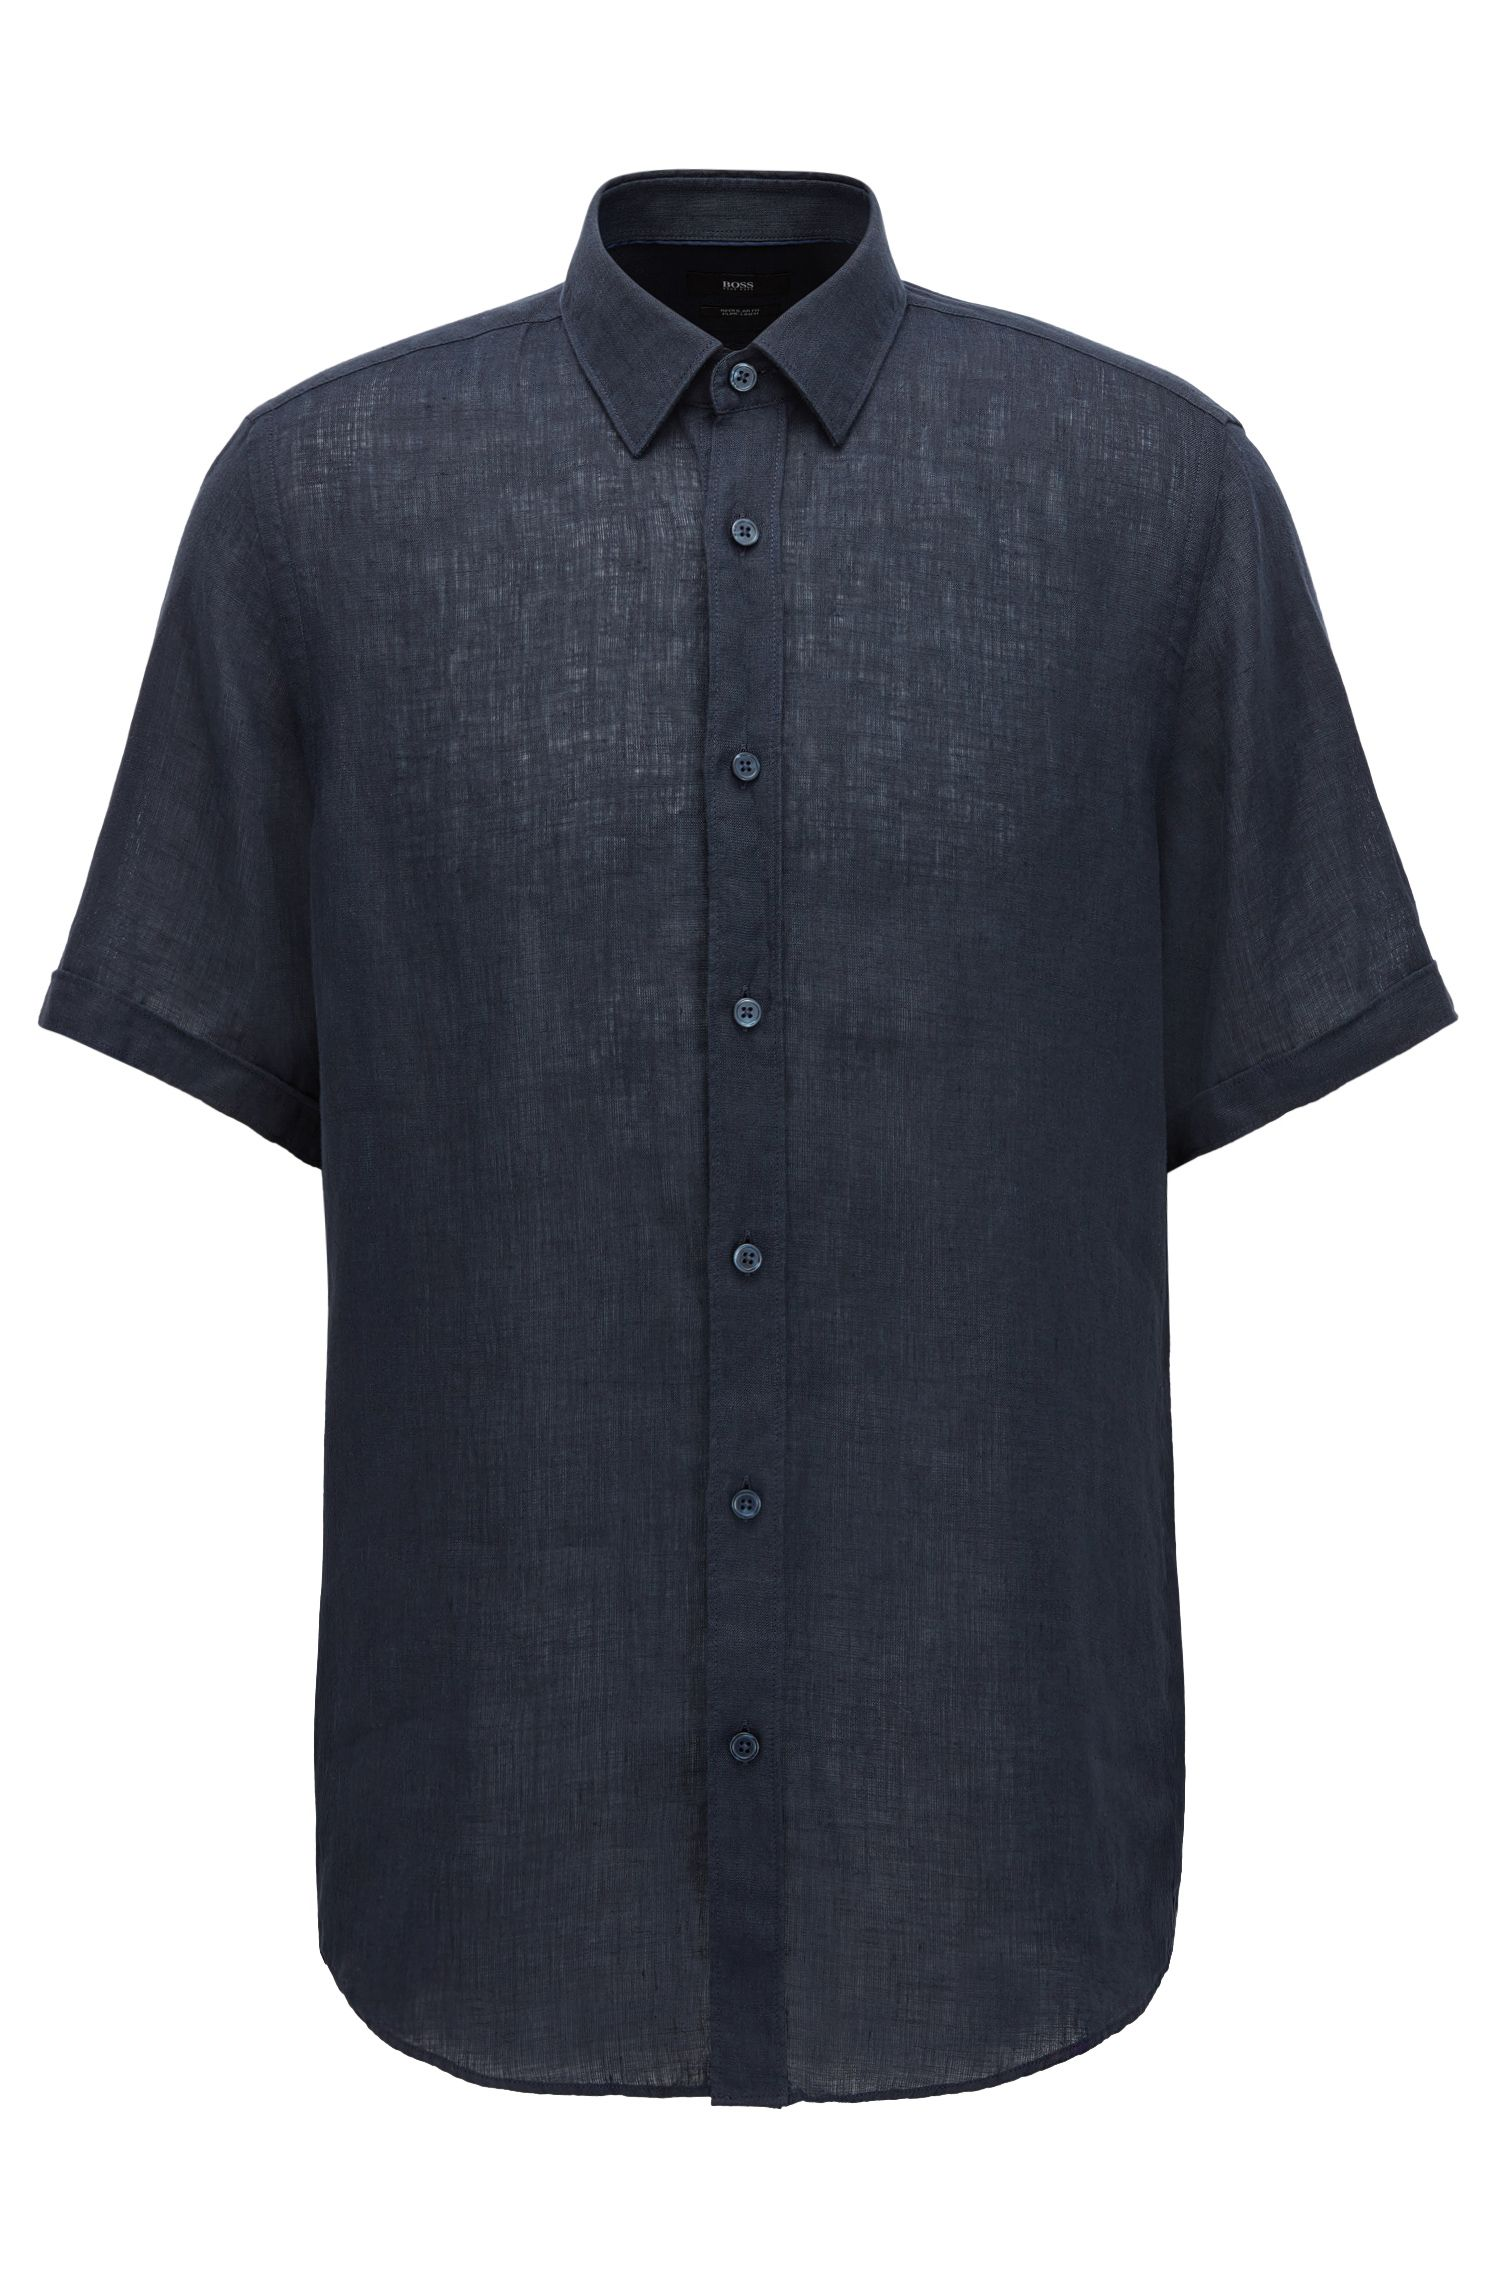 Regular fit short-sleeved shirt in washed Italian linen